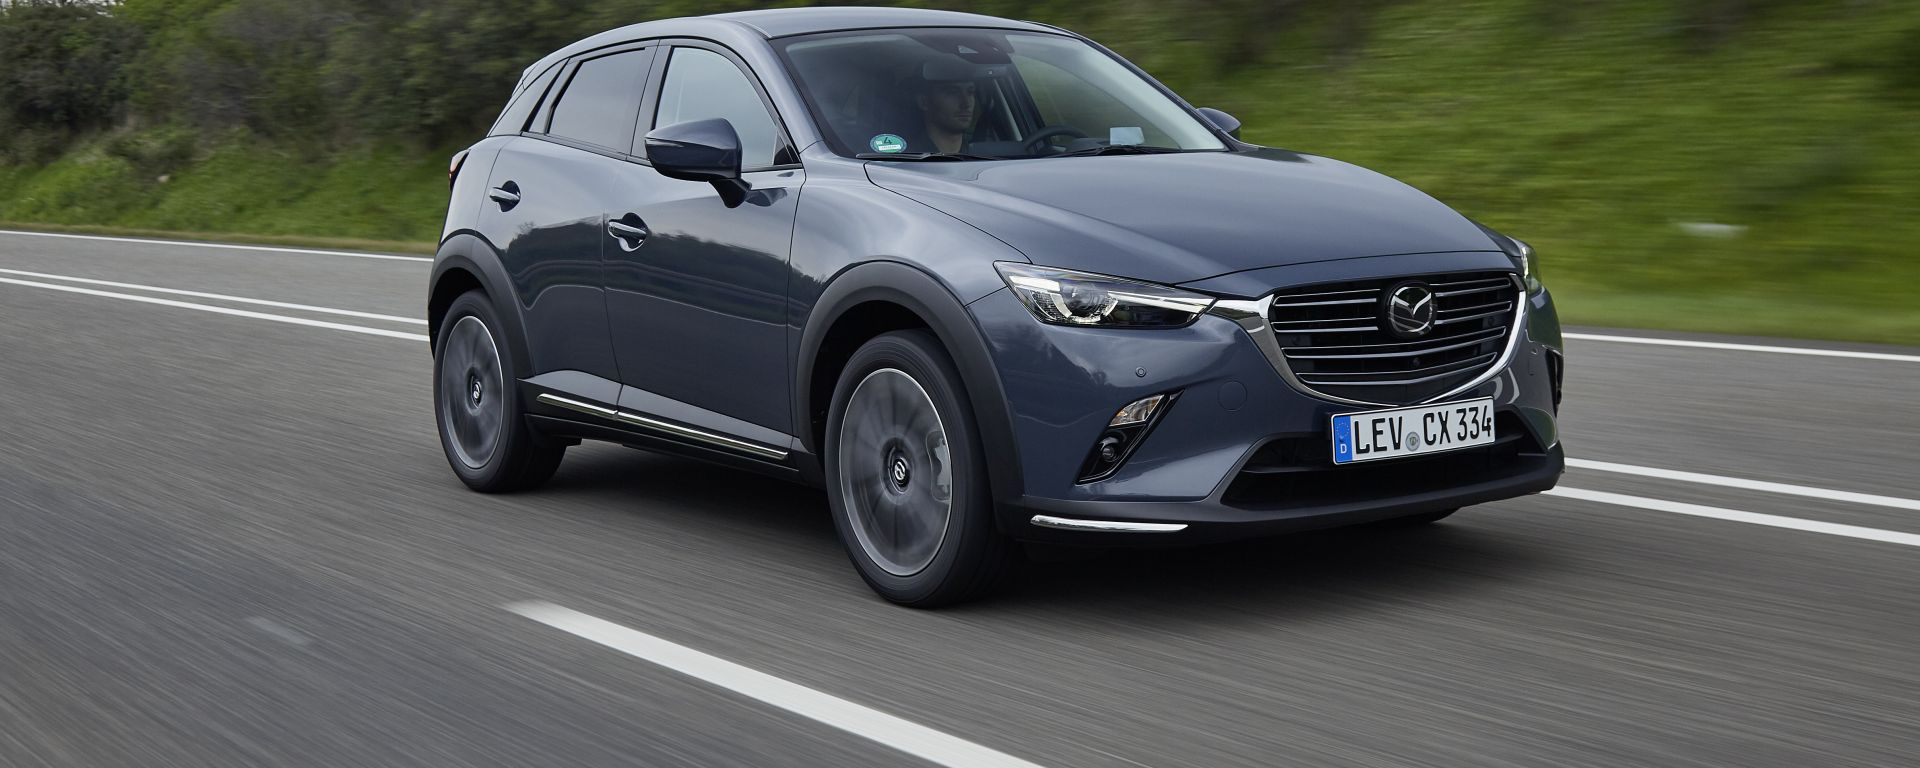 Mazda CX-3 Polymethal Gray Metallic